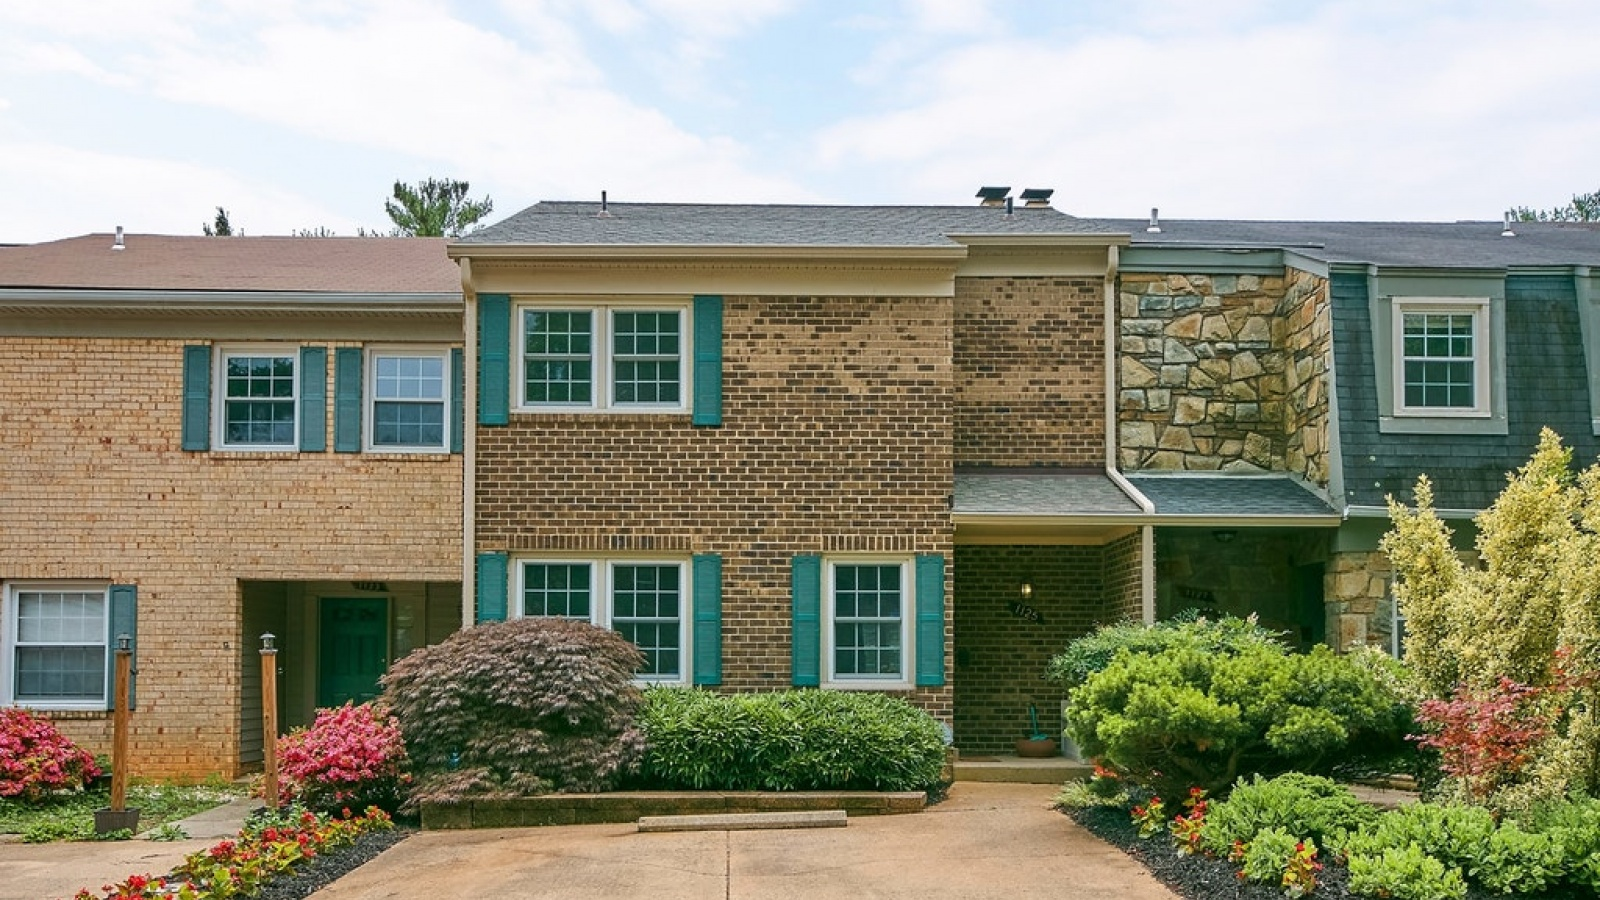 3 Bedrooms, Townhouse, For sale, Moorefield Hill Court SW, 2 Bathrooms, Listing ID 1099, Vienna, United States, 22180,